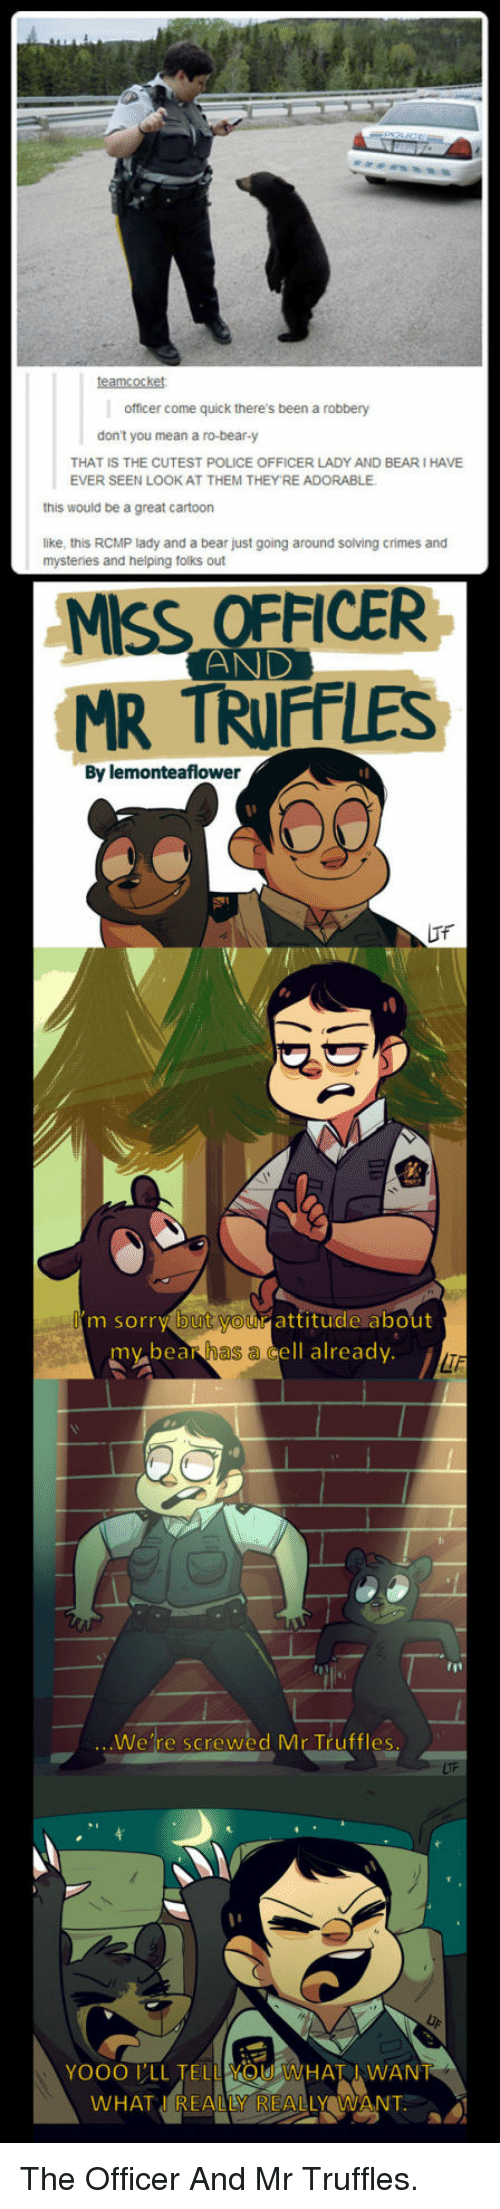 Police, Sorry, and Bear: officer come quick there's been a robbery  don't you mean a ro-bear-y  THAT IS THE CUTEST POLICE OFFICER LADY AND BEAR I HAVE  EVER SEEN LOOK AT THEM THEY'RE ADORABLE  this would be a great cartoon  like, this RCMP lady and a bear just going around solving crimes and  mysteries and helping folks out  MISS OFFICER  MR TRIFFLES  AND  By lemonteaflower  m sorry but you attitude about  0%bea  has a c  ell alreadv  We're screwed Mr Truffles  1  YOOO I'LL TELL YOU WHAT WANT  WHAT REALLY REALLY WANT. <p>The Officer And Mr Truffles.</p>